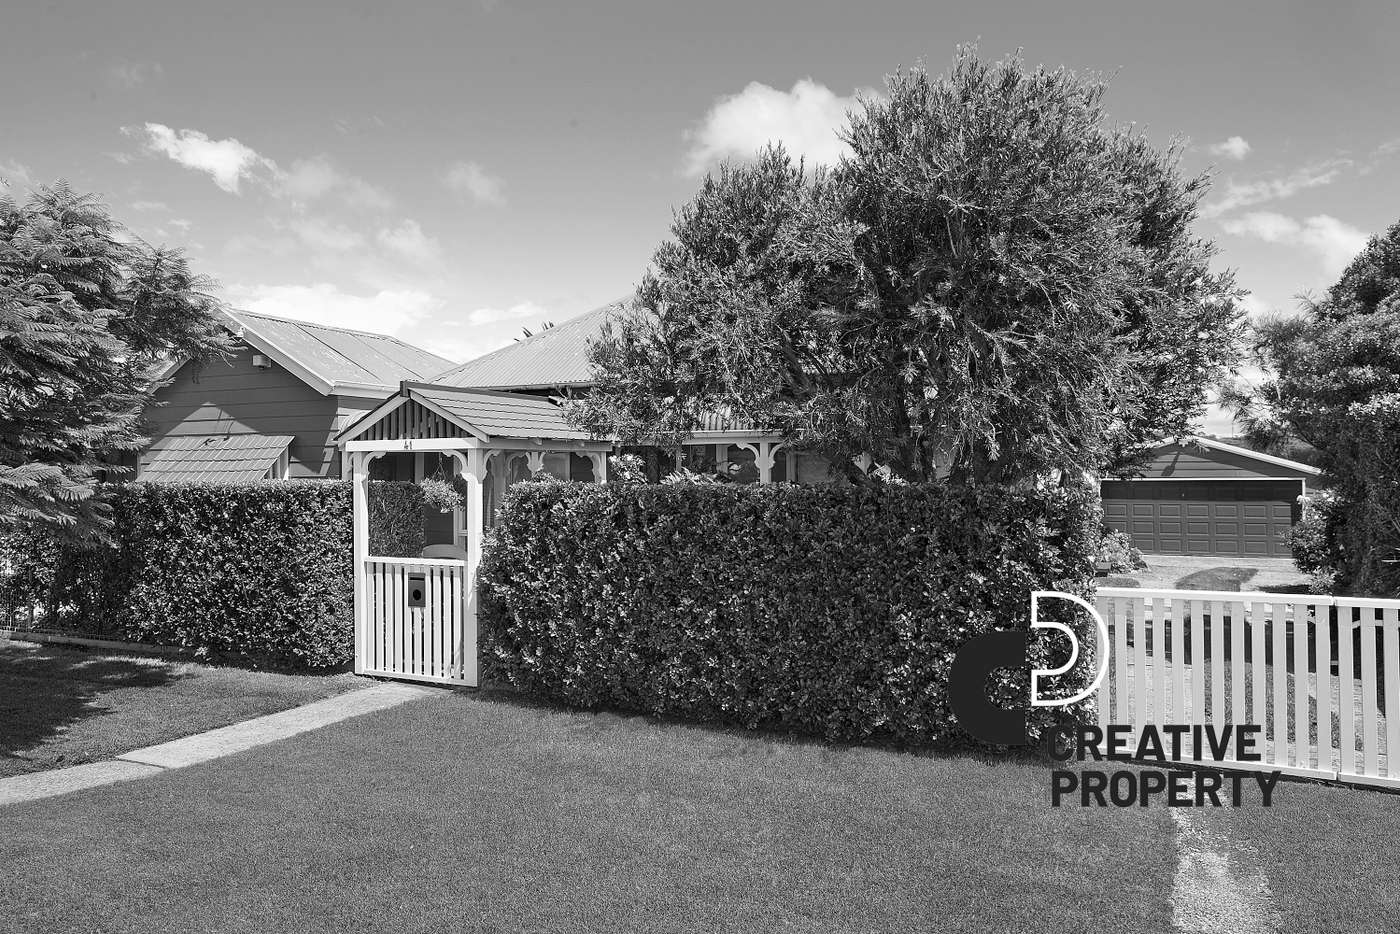 Main view of Homely house listing, 41 Hill Street, Wallsend NSW 2287